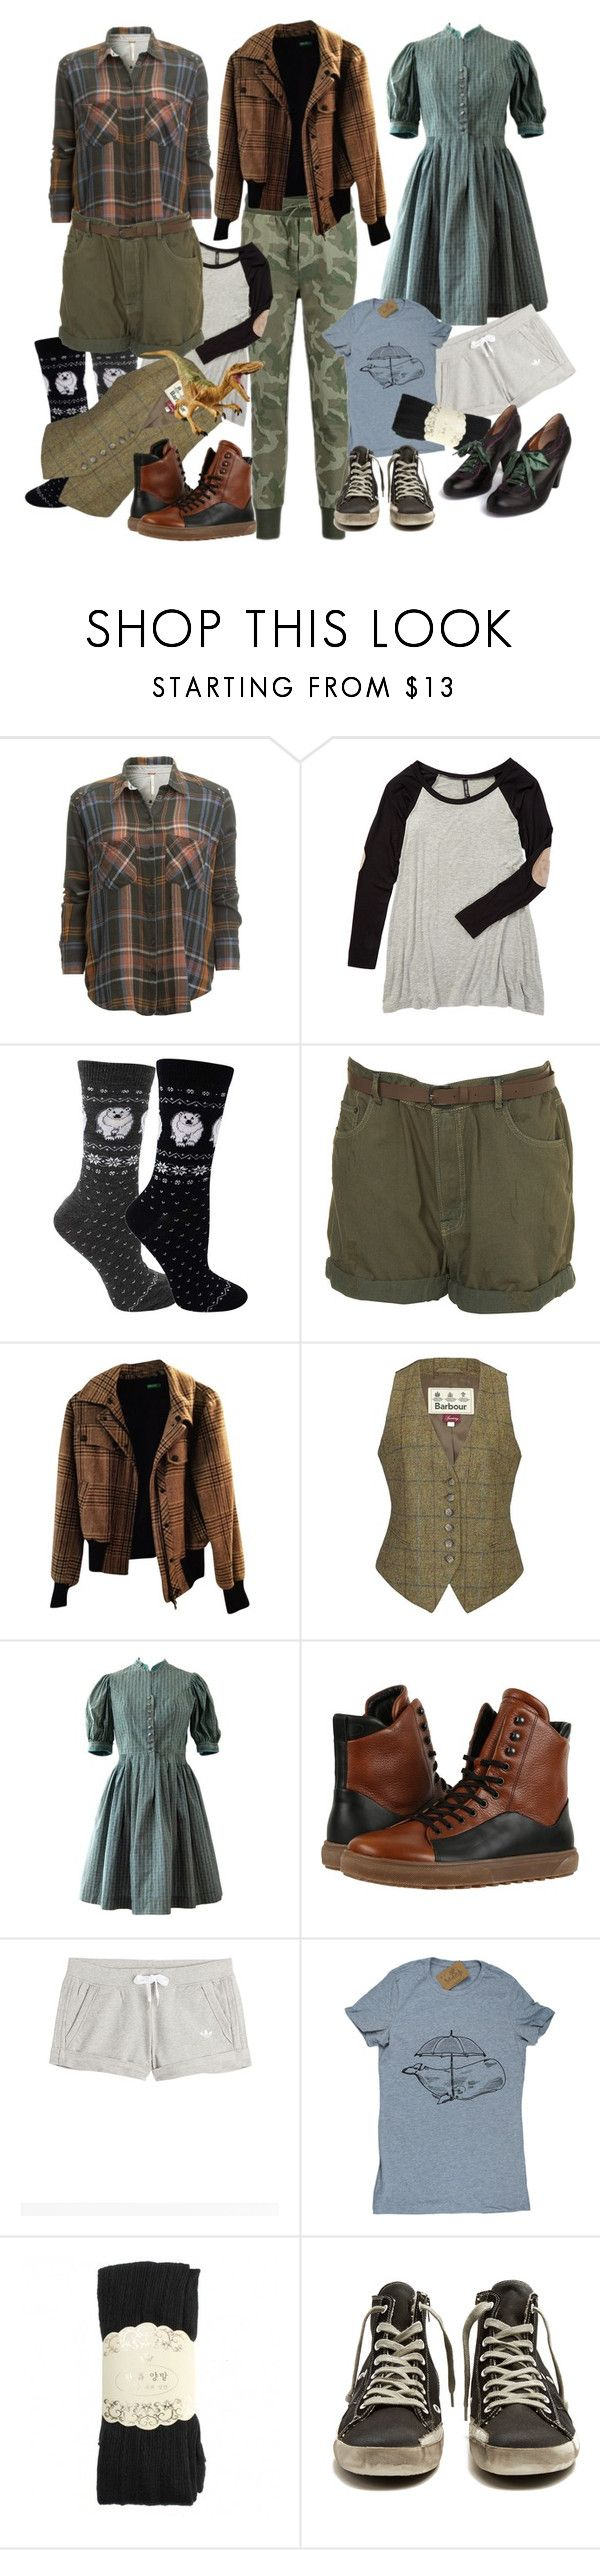 """""""Steam Casual"""" by amanda-anda-panda ❤ liked on Polyvore featuring Free People, Magic Fit, Benetton, Barbour, HOOD Rubber Company, adidas Originals, Poetic Licence and Golden Goose"""